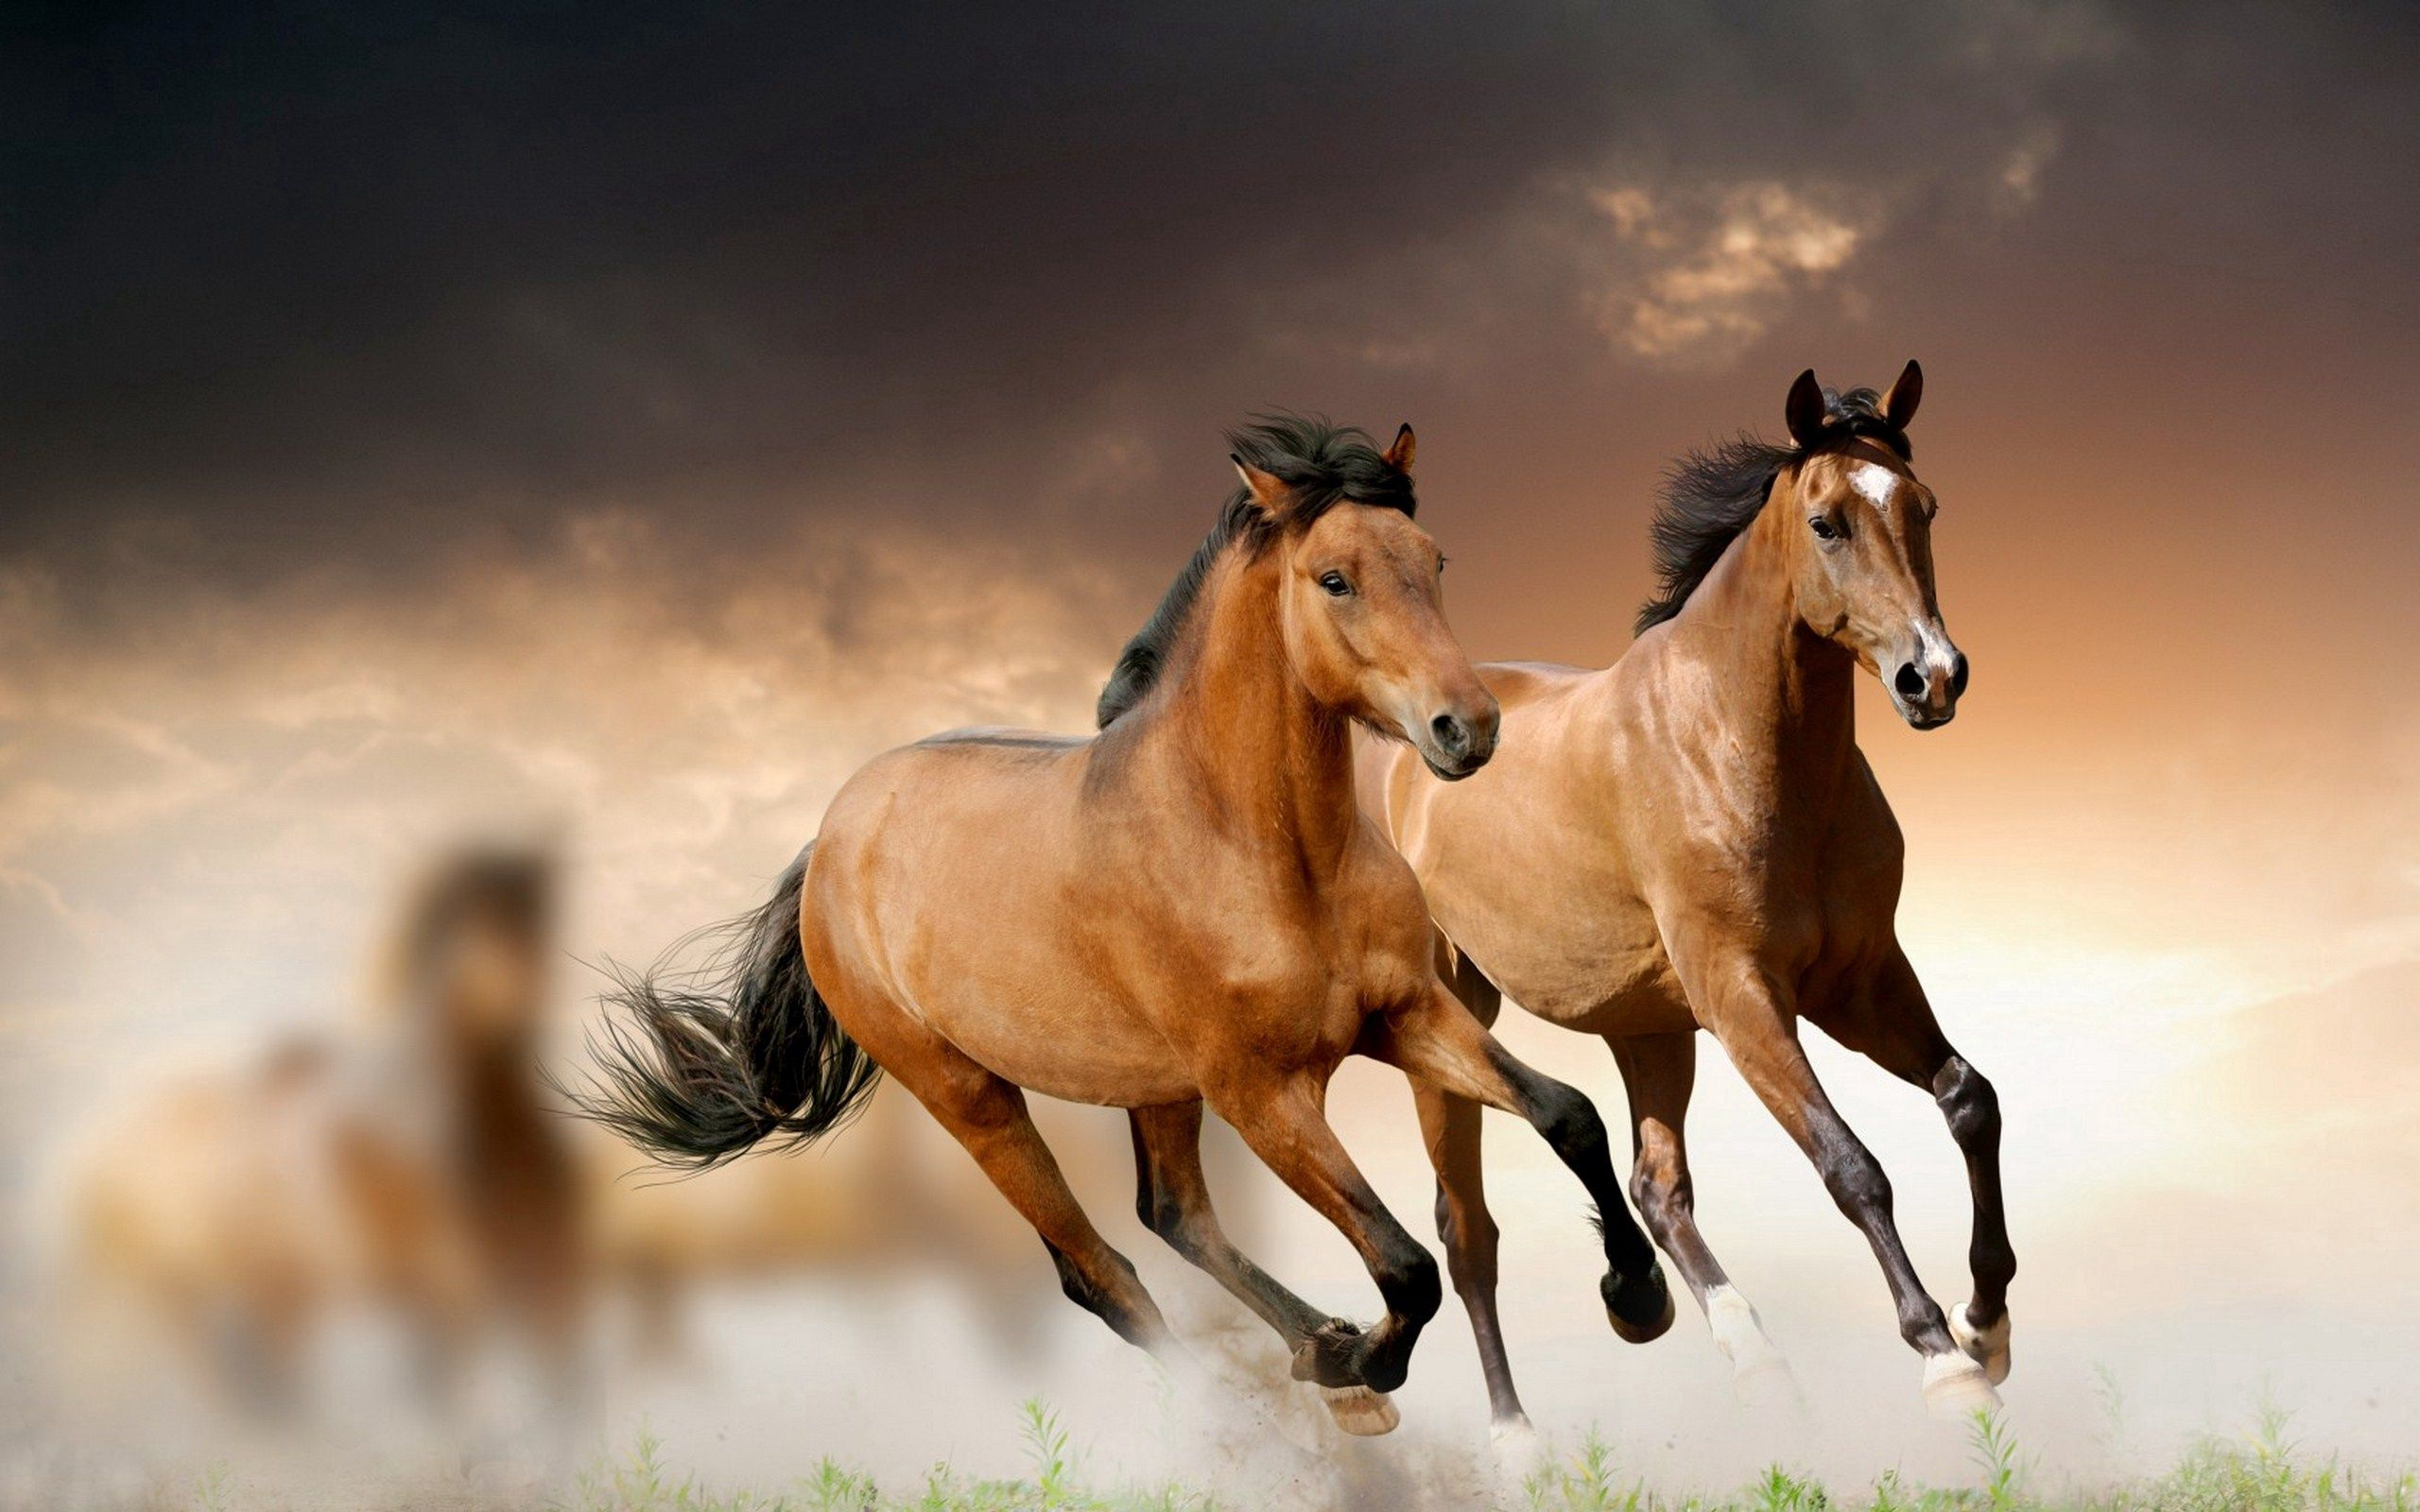 79808 download wallpaper Horses, Animals, Grass, Clouds, Run, Running screensavers and pictures for free